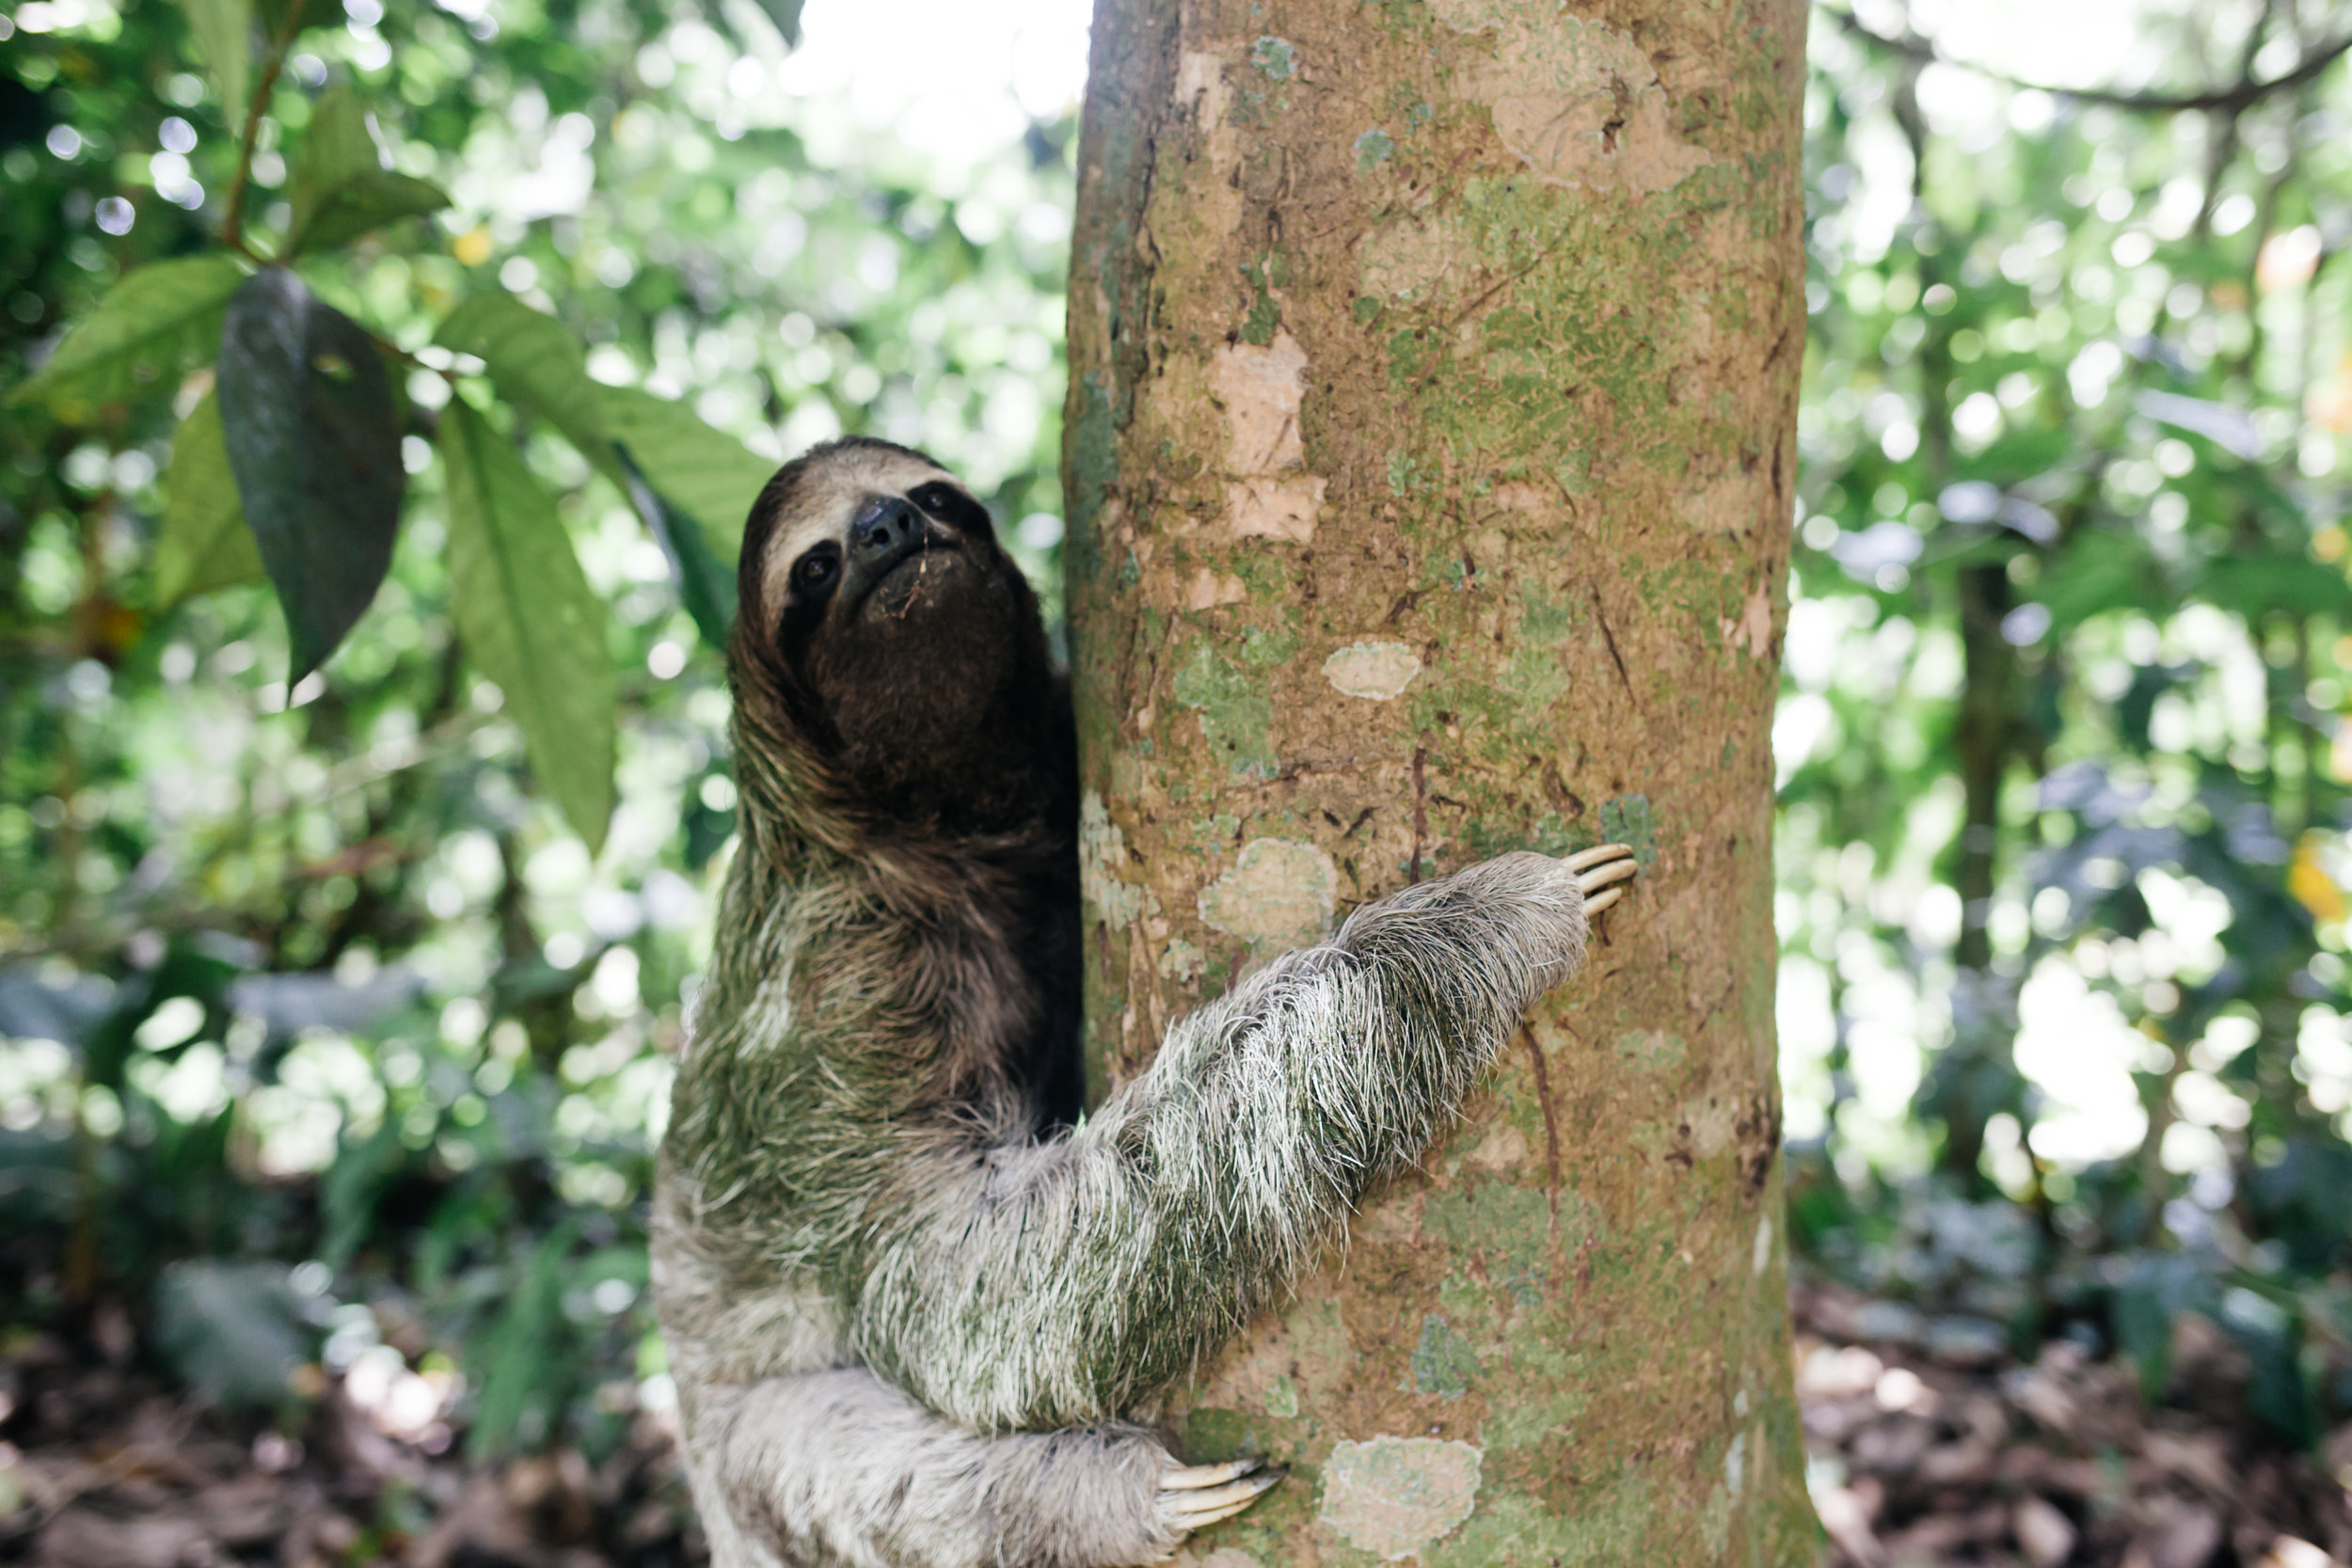 costarica_airbnb_sloth (25 of 49).jpg